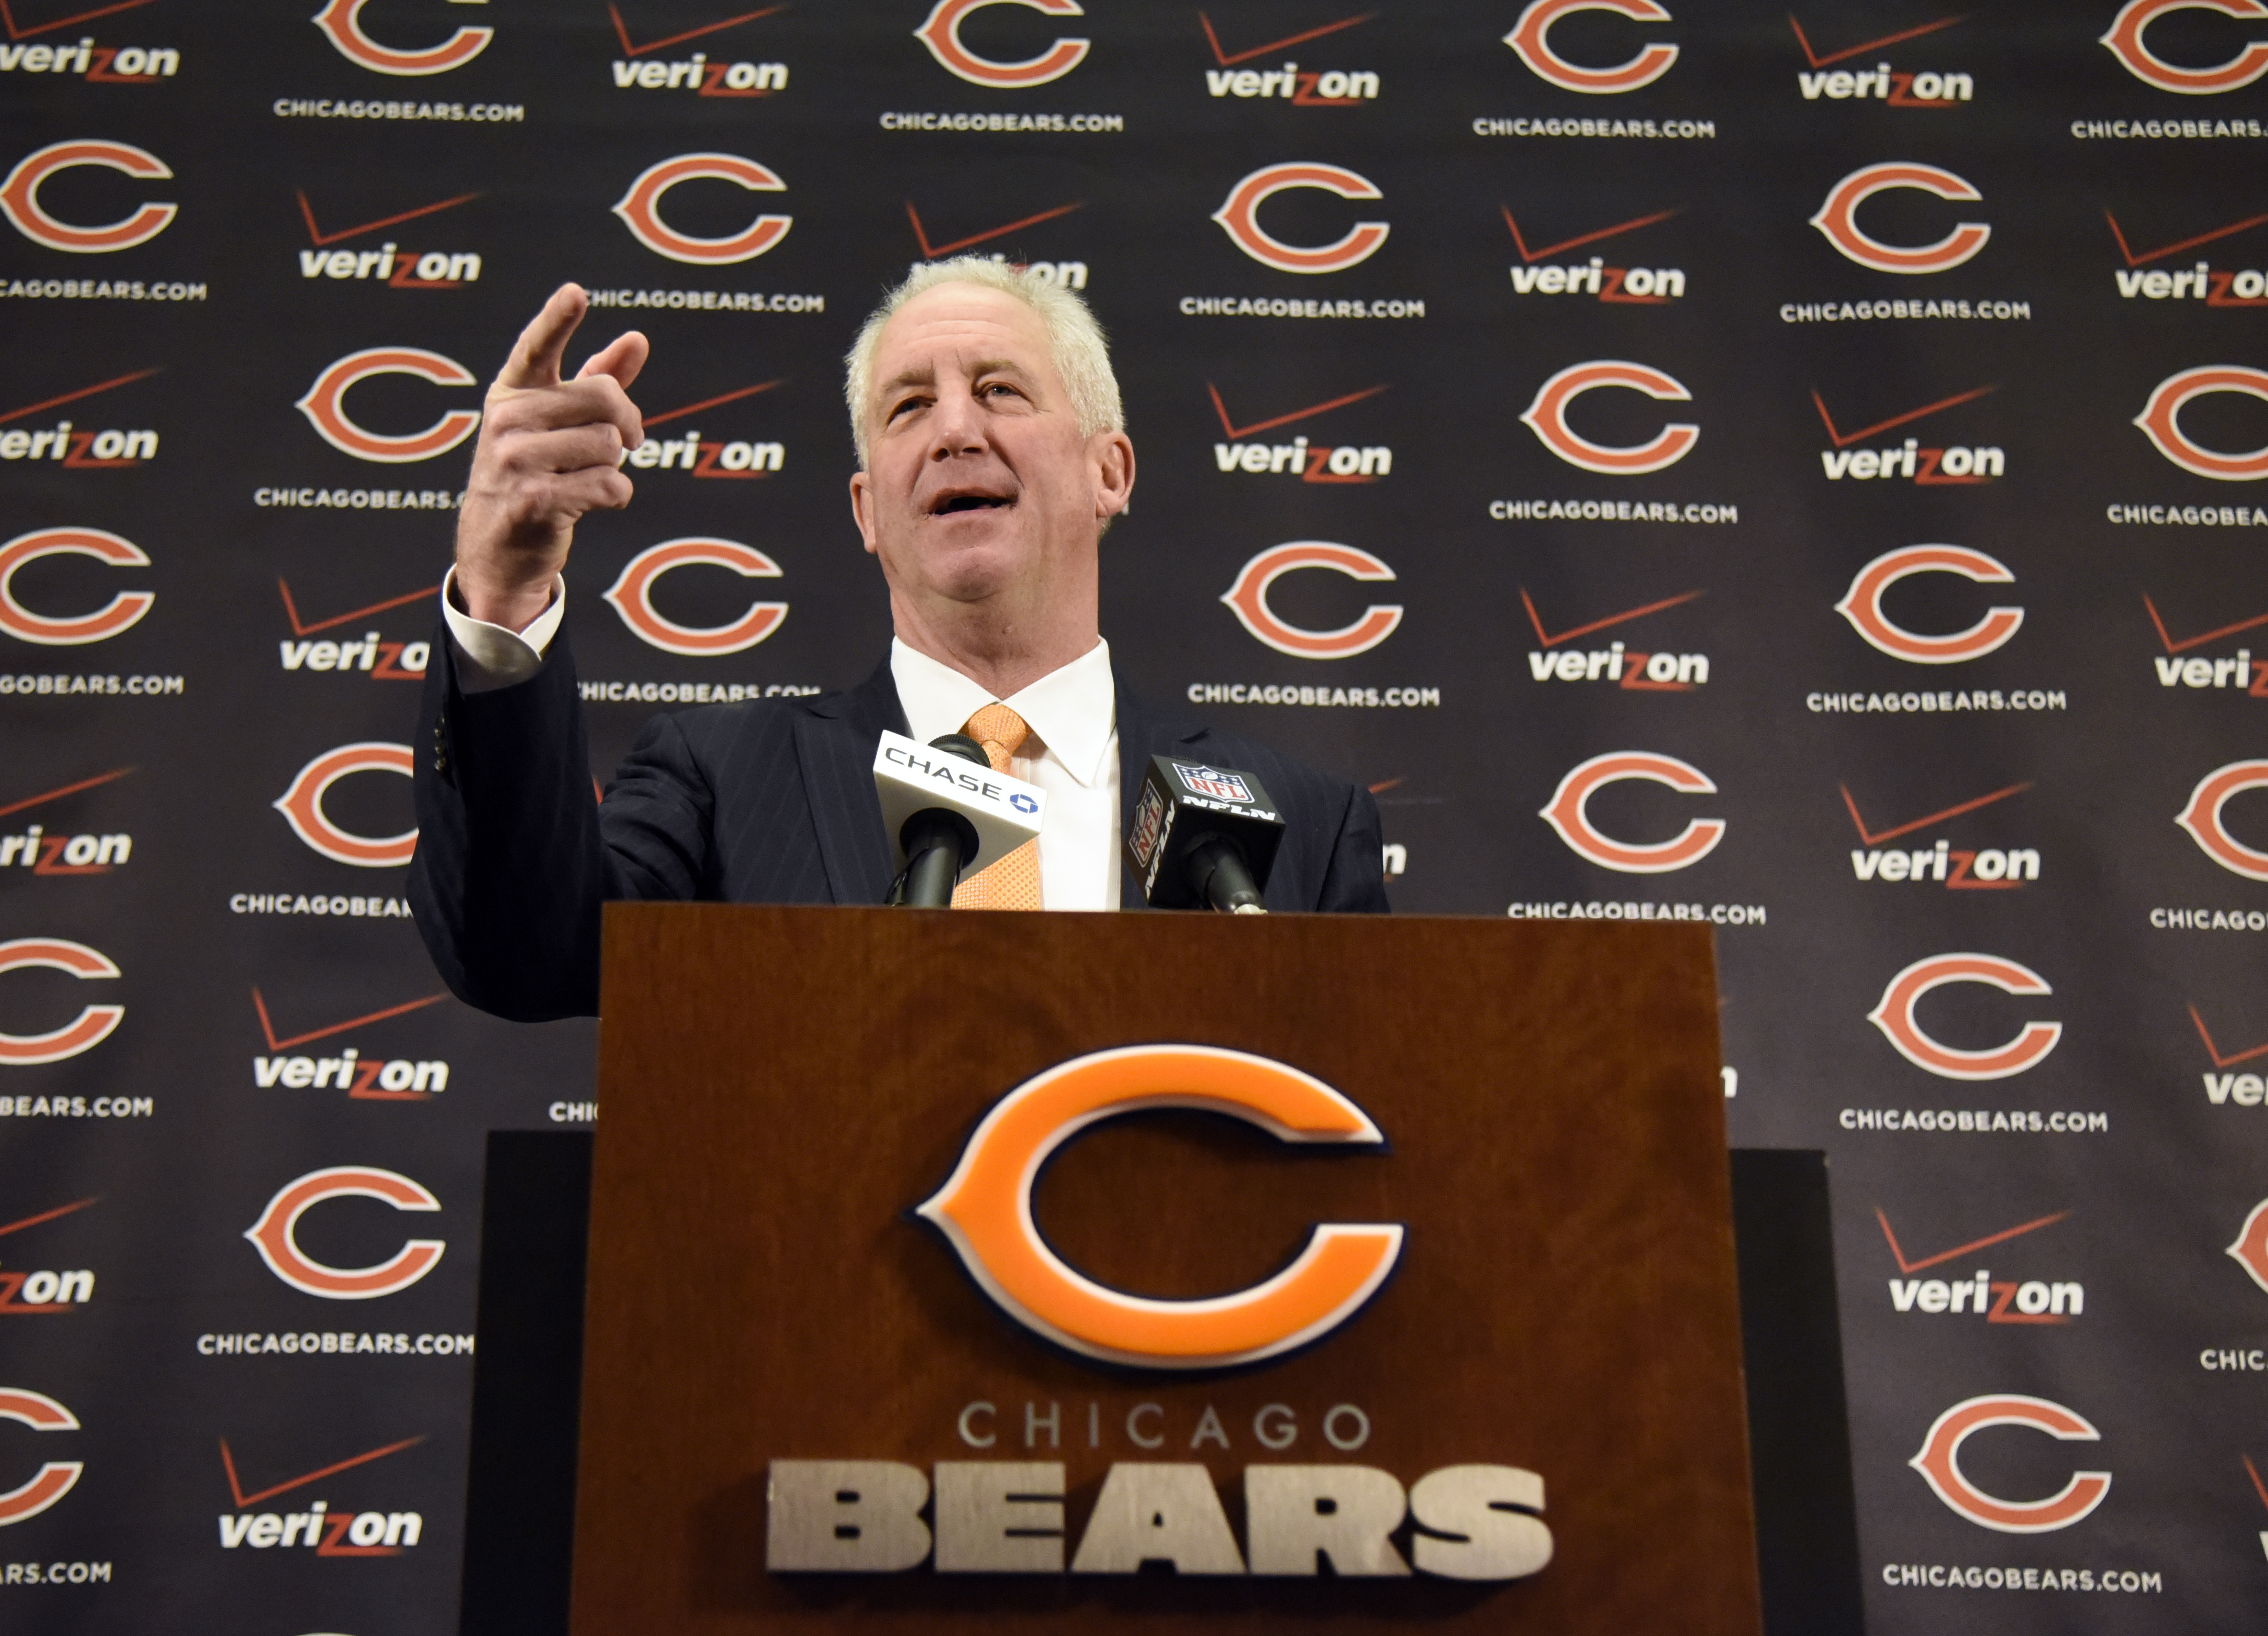 Chicago Bears new head coach John Fox on January 19, 2015 at Halas Hall in Lake Forest, Illinois.  (Photo by David Banks/Getty Images)